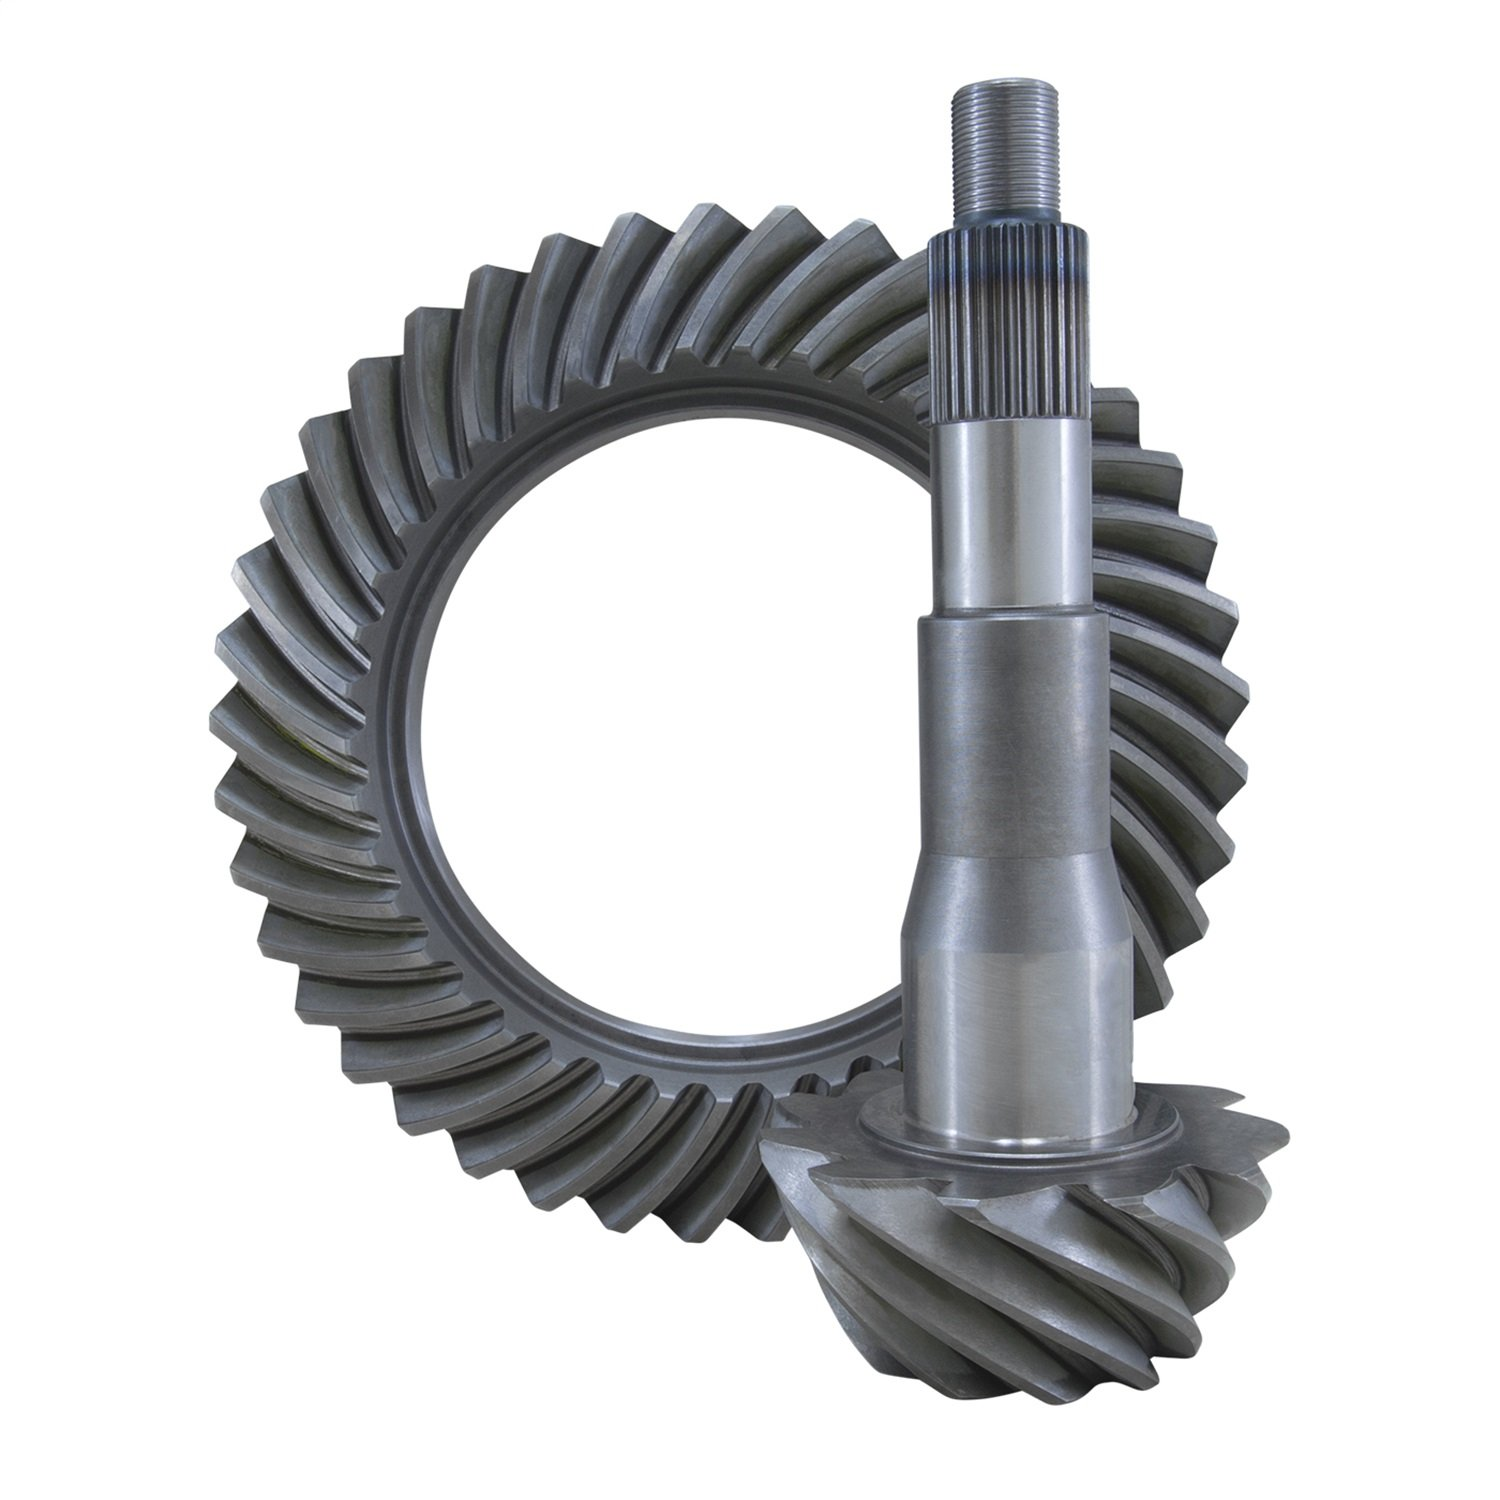 ZG D44-411T Replacement Ring /& Pinion Gear Set for Dana 44 Differential USA Standard Gear